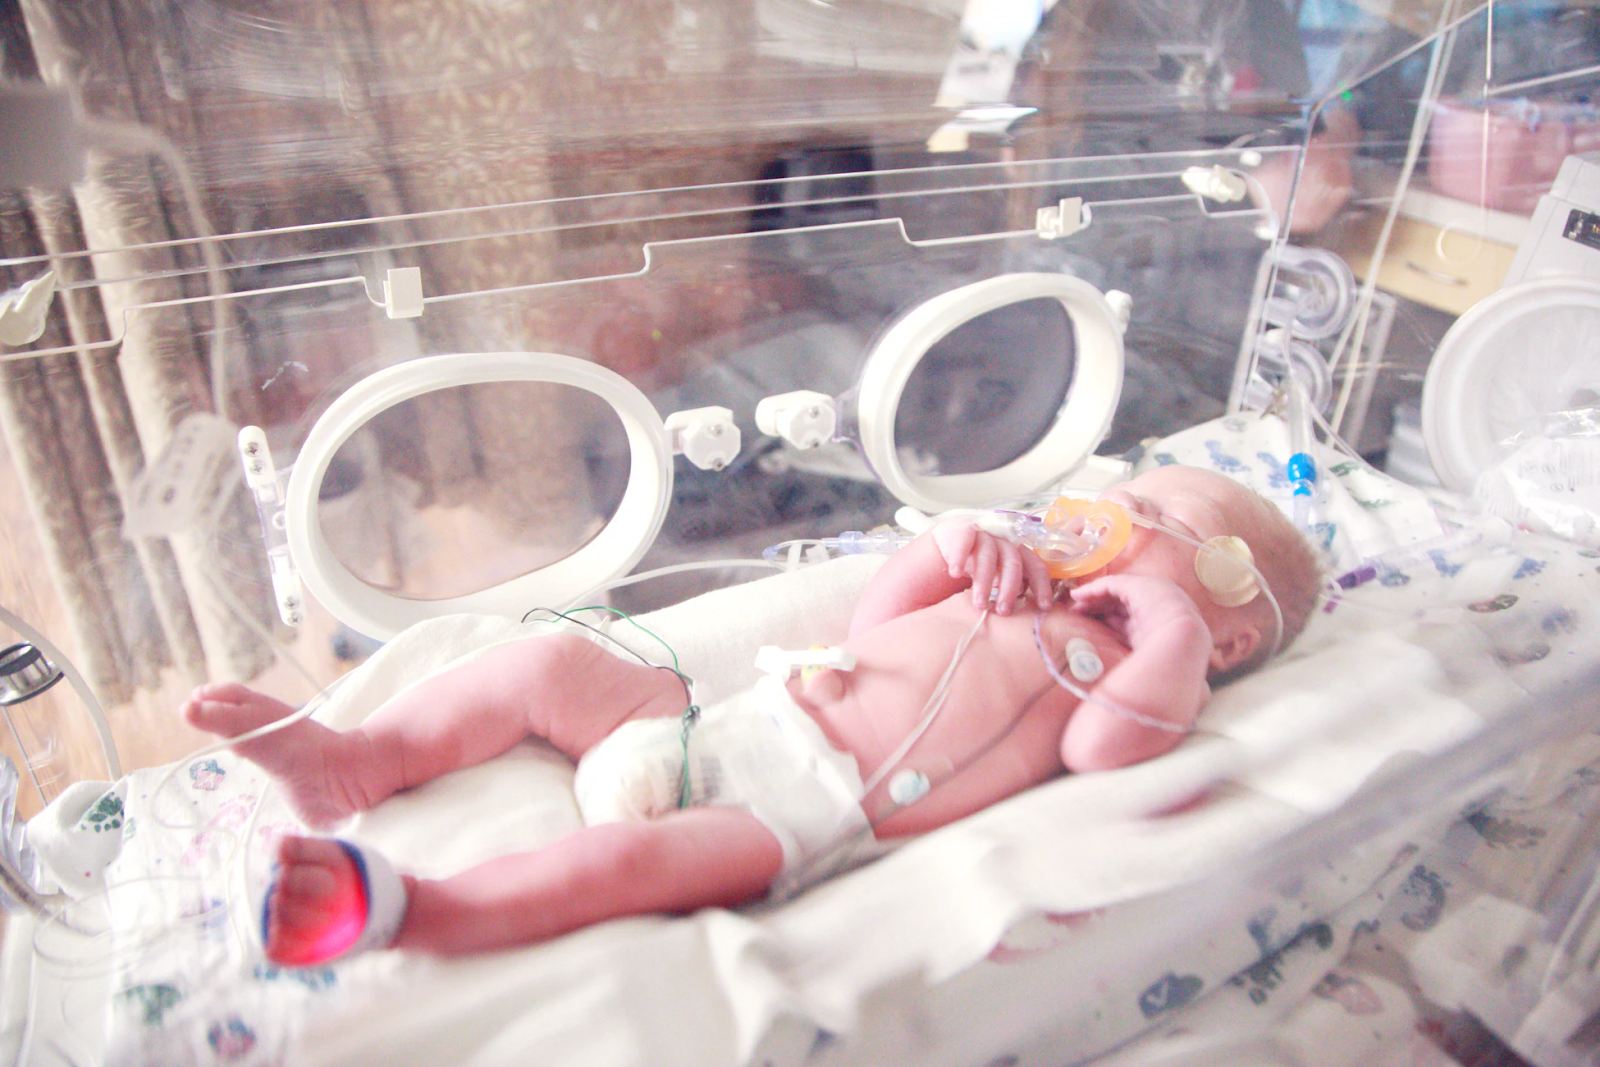 An image of a premature baby in the NICU or neonatal intensive care unit. They have several monitors and are hooked up to a machine to help them breathe.